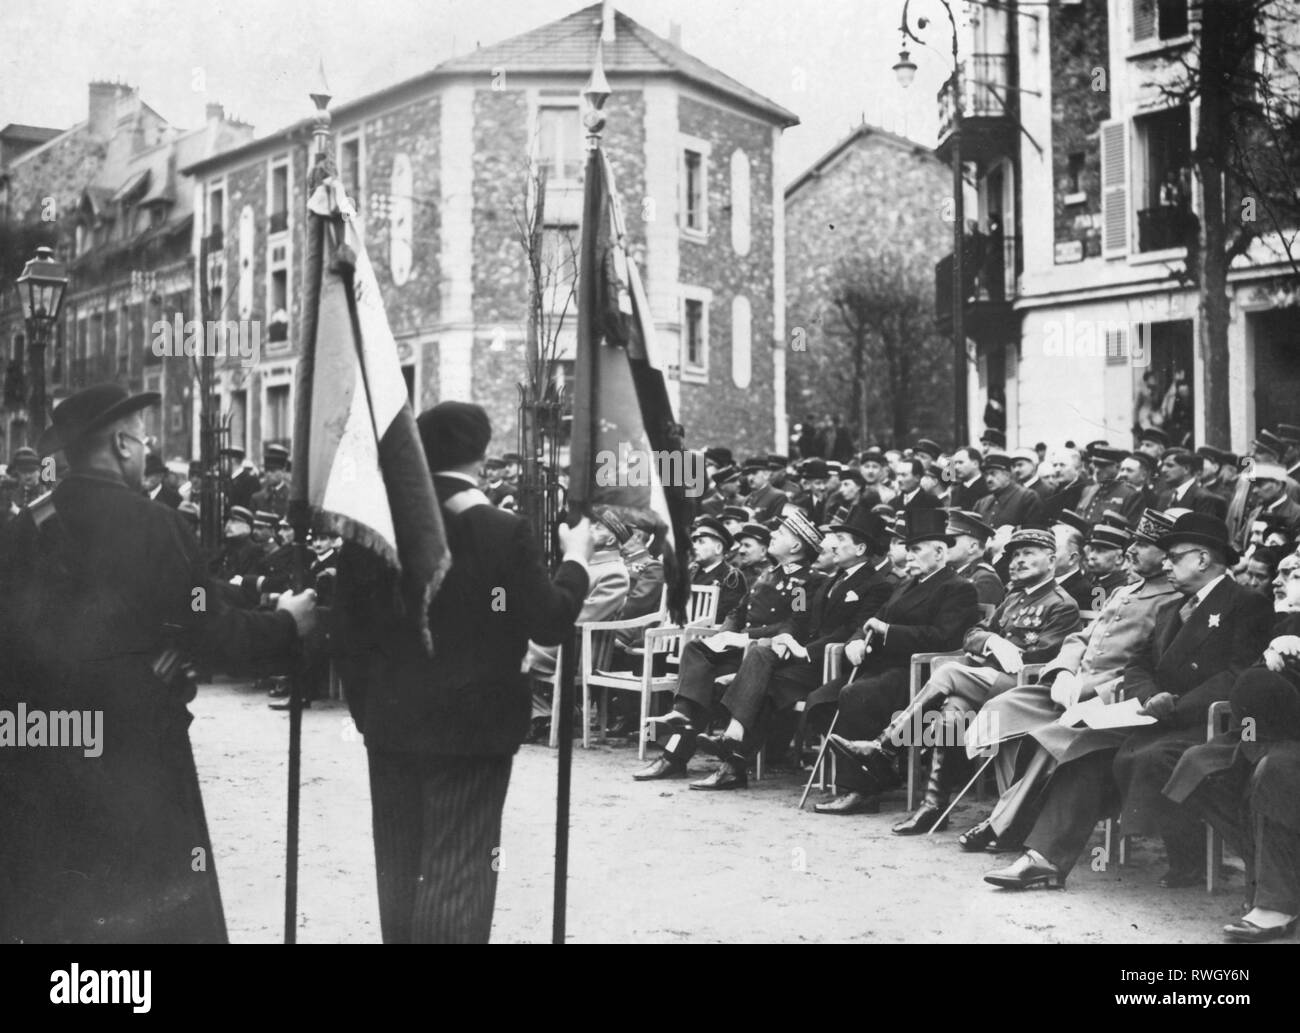 Petain, Henri Philippe, 24.4.1856 - 23.7.1953, French general and politician, half-length, with general Maxime Weygand at the uncovering of the statue of Andre Lefevre, Versailles, 1936, Additional-Rights-Clearance-Info-Not-Available - Stock Image